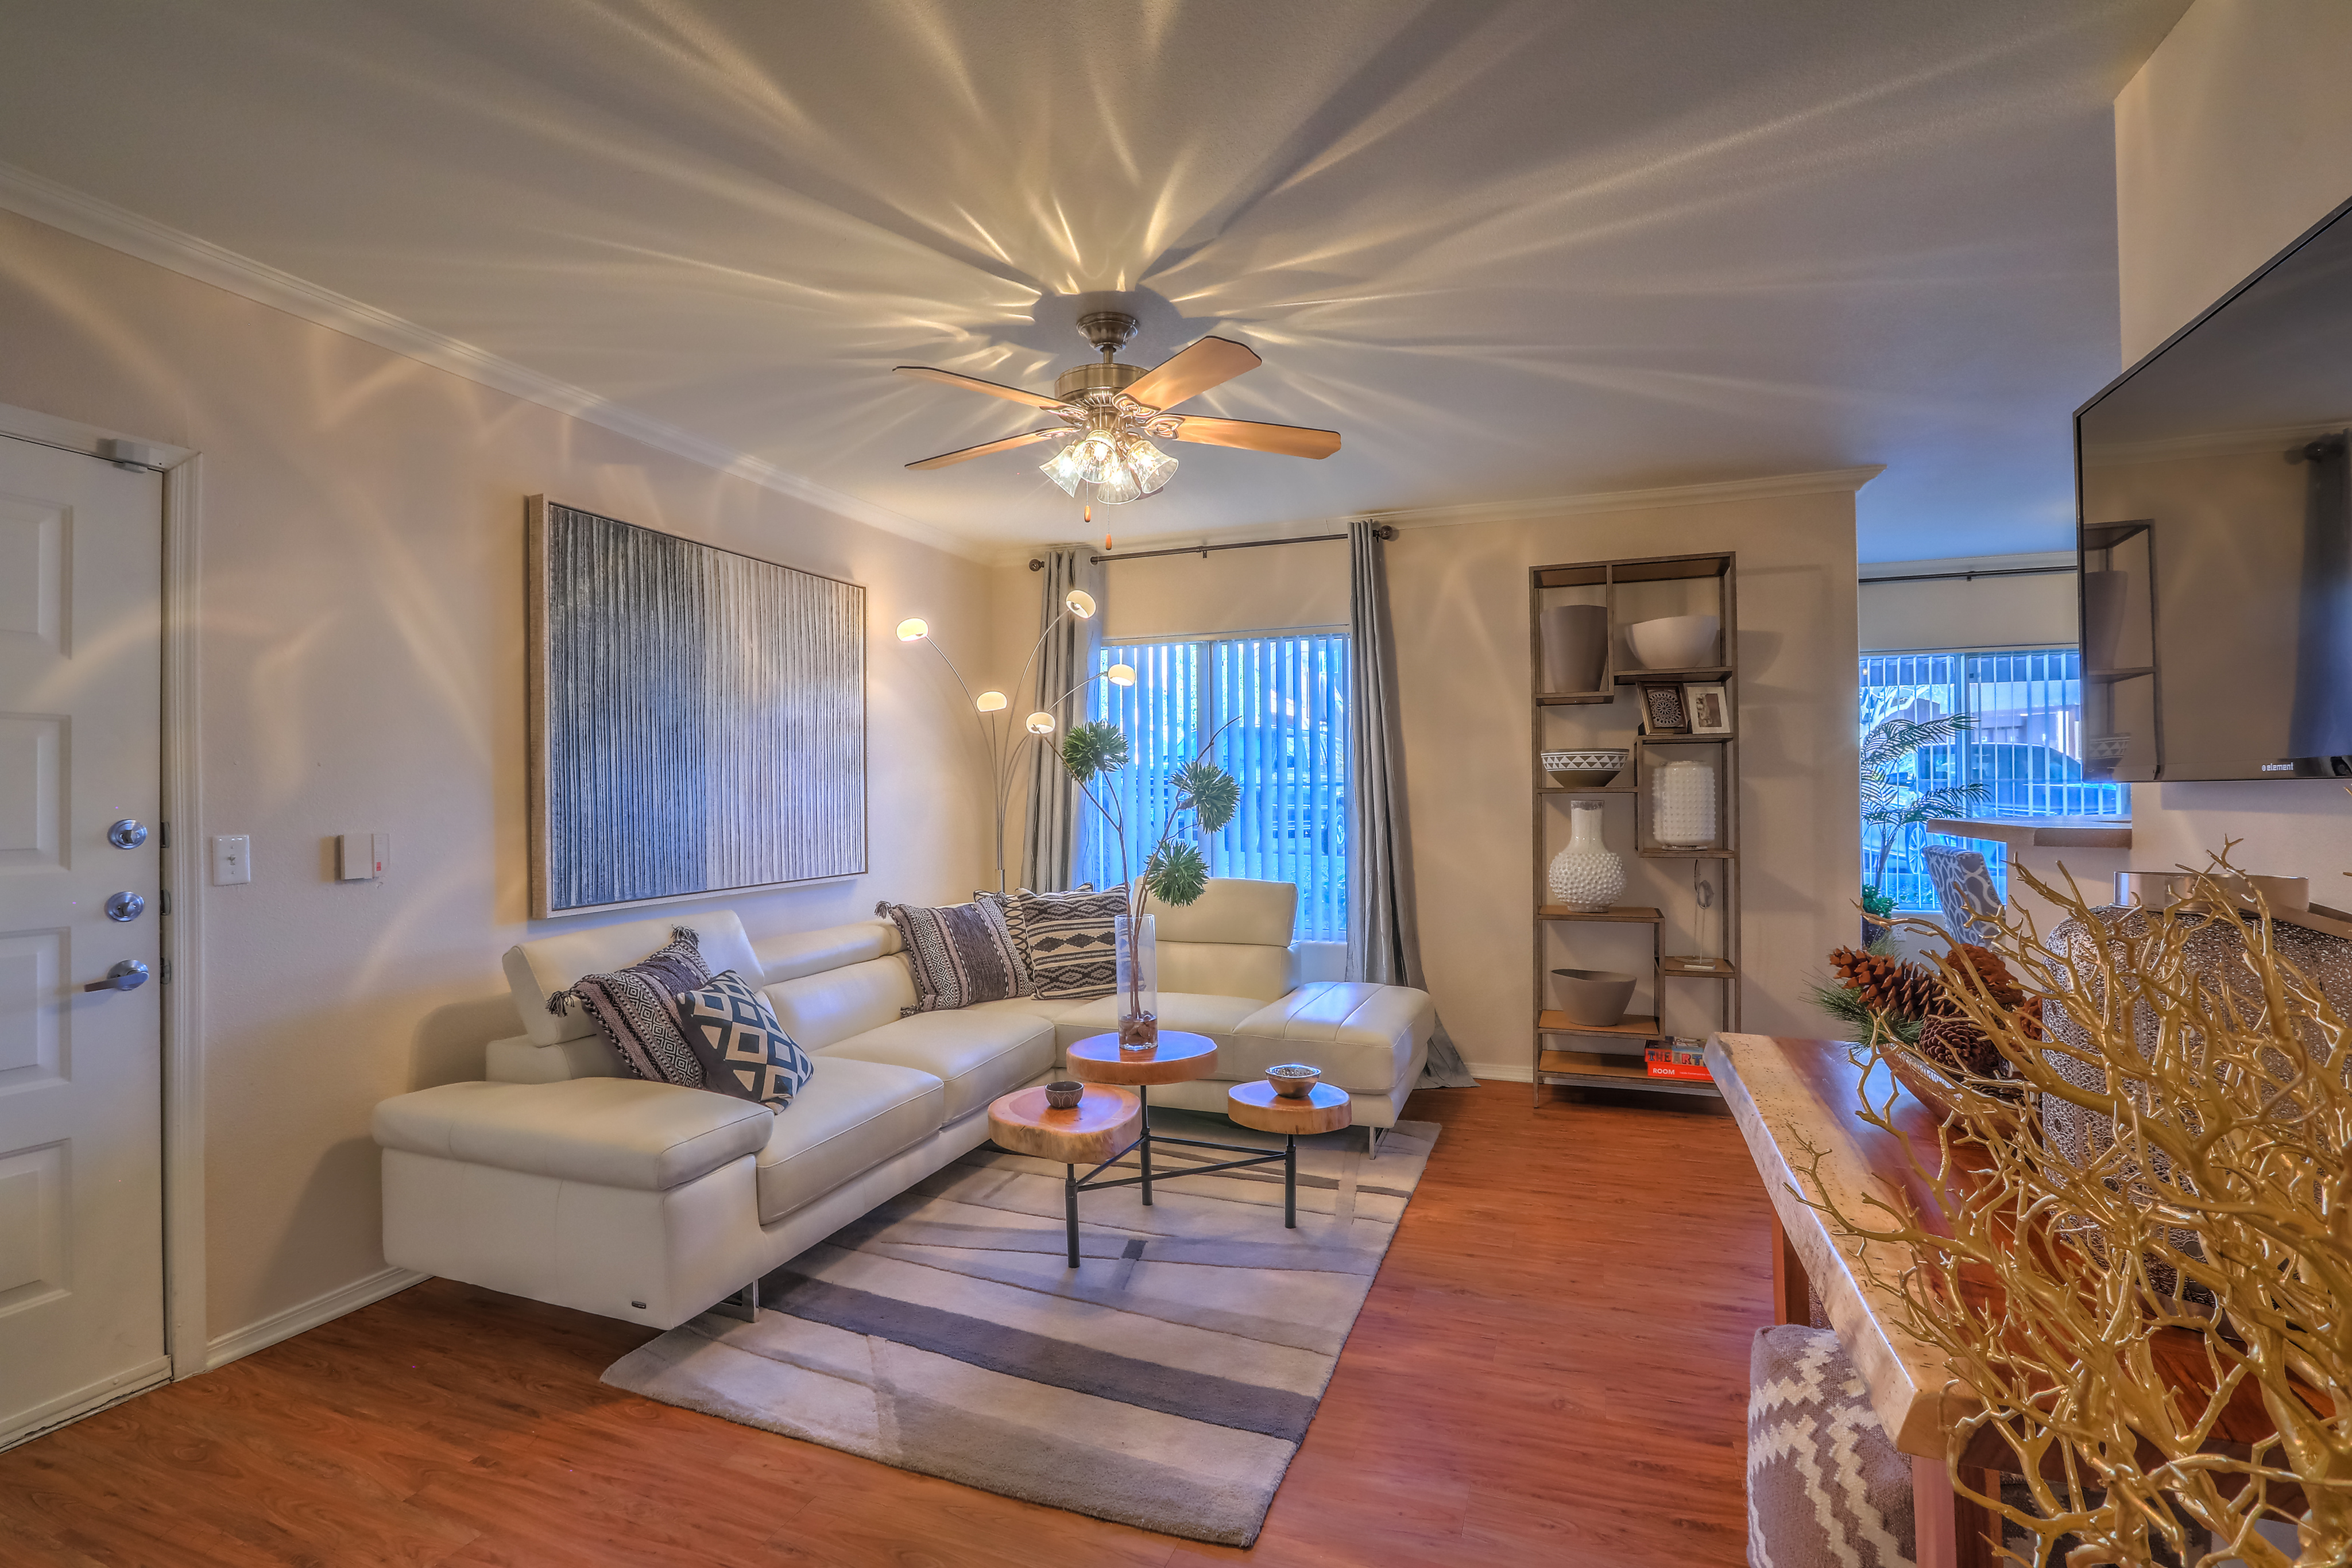 Living room in 2 bedroom apartment home in Altezza